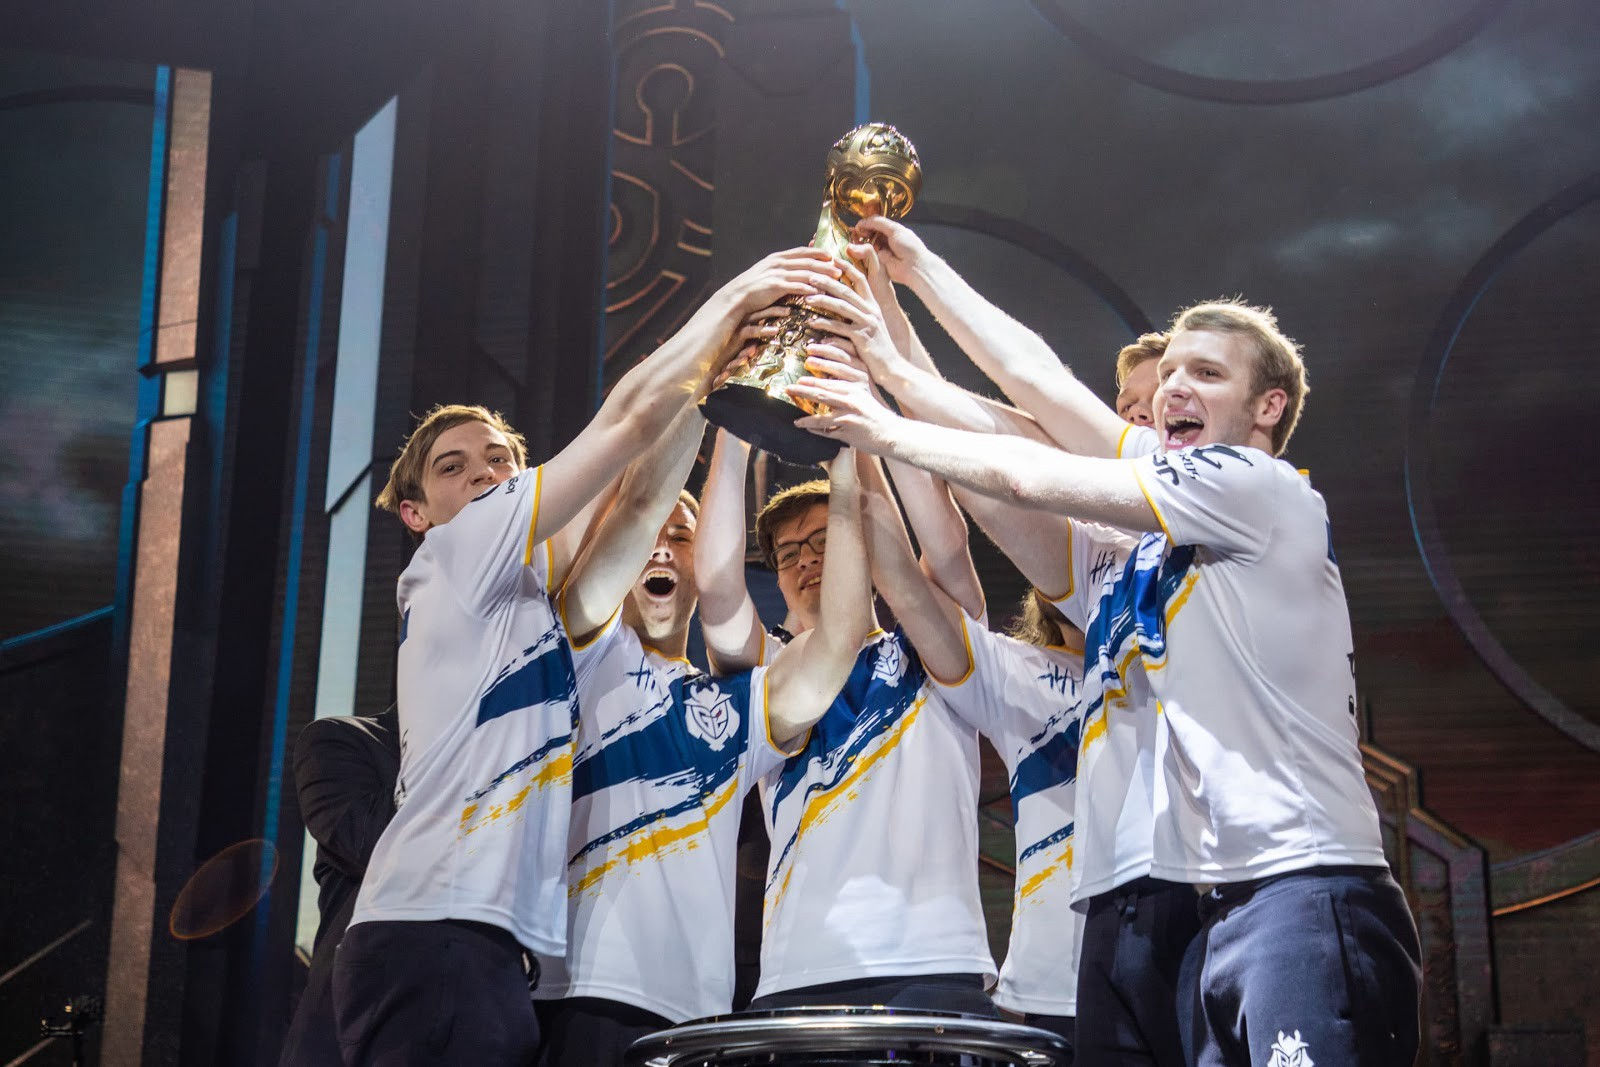 Perkz joins Cloud9 in the LCS.